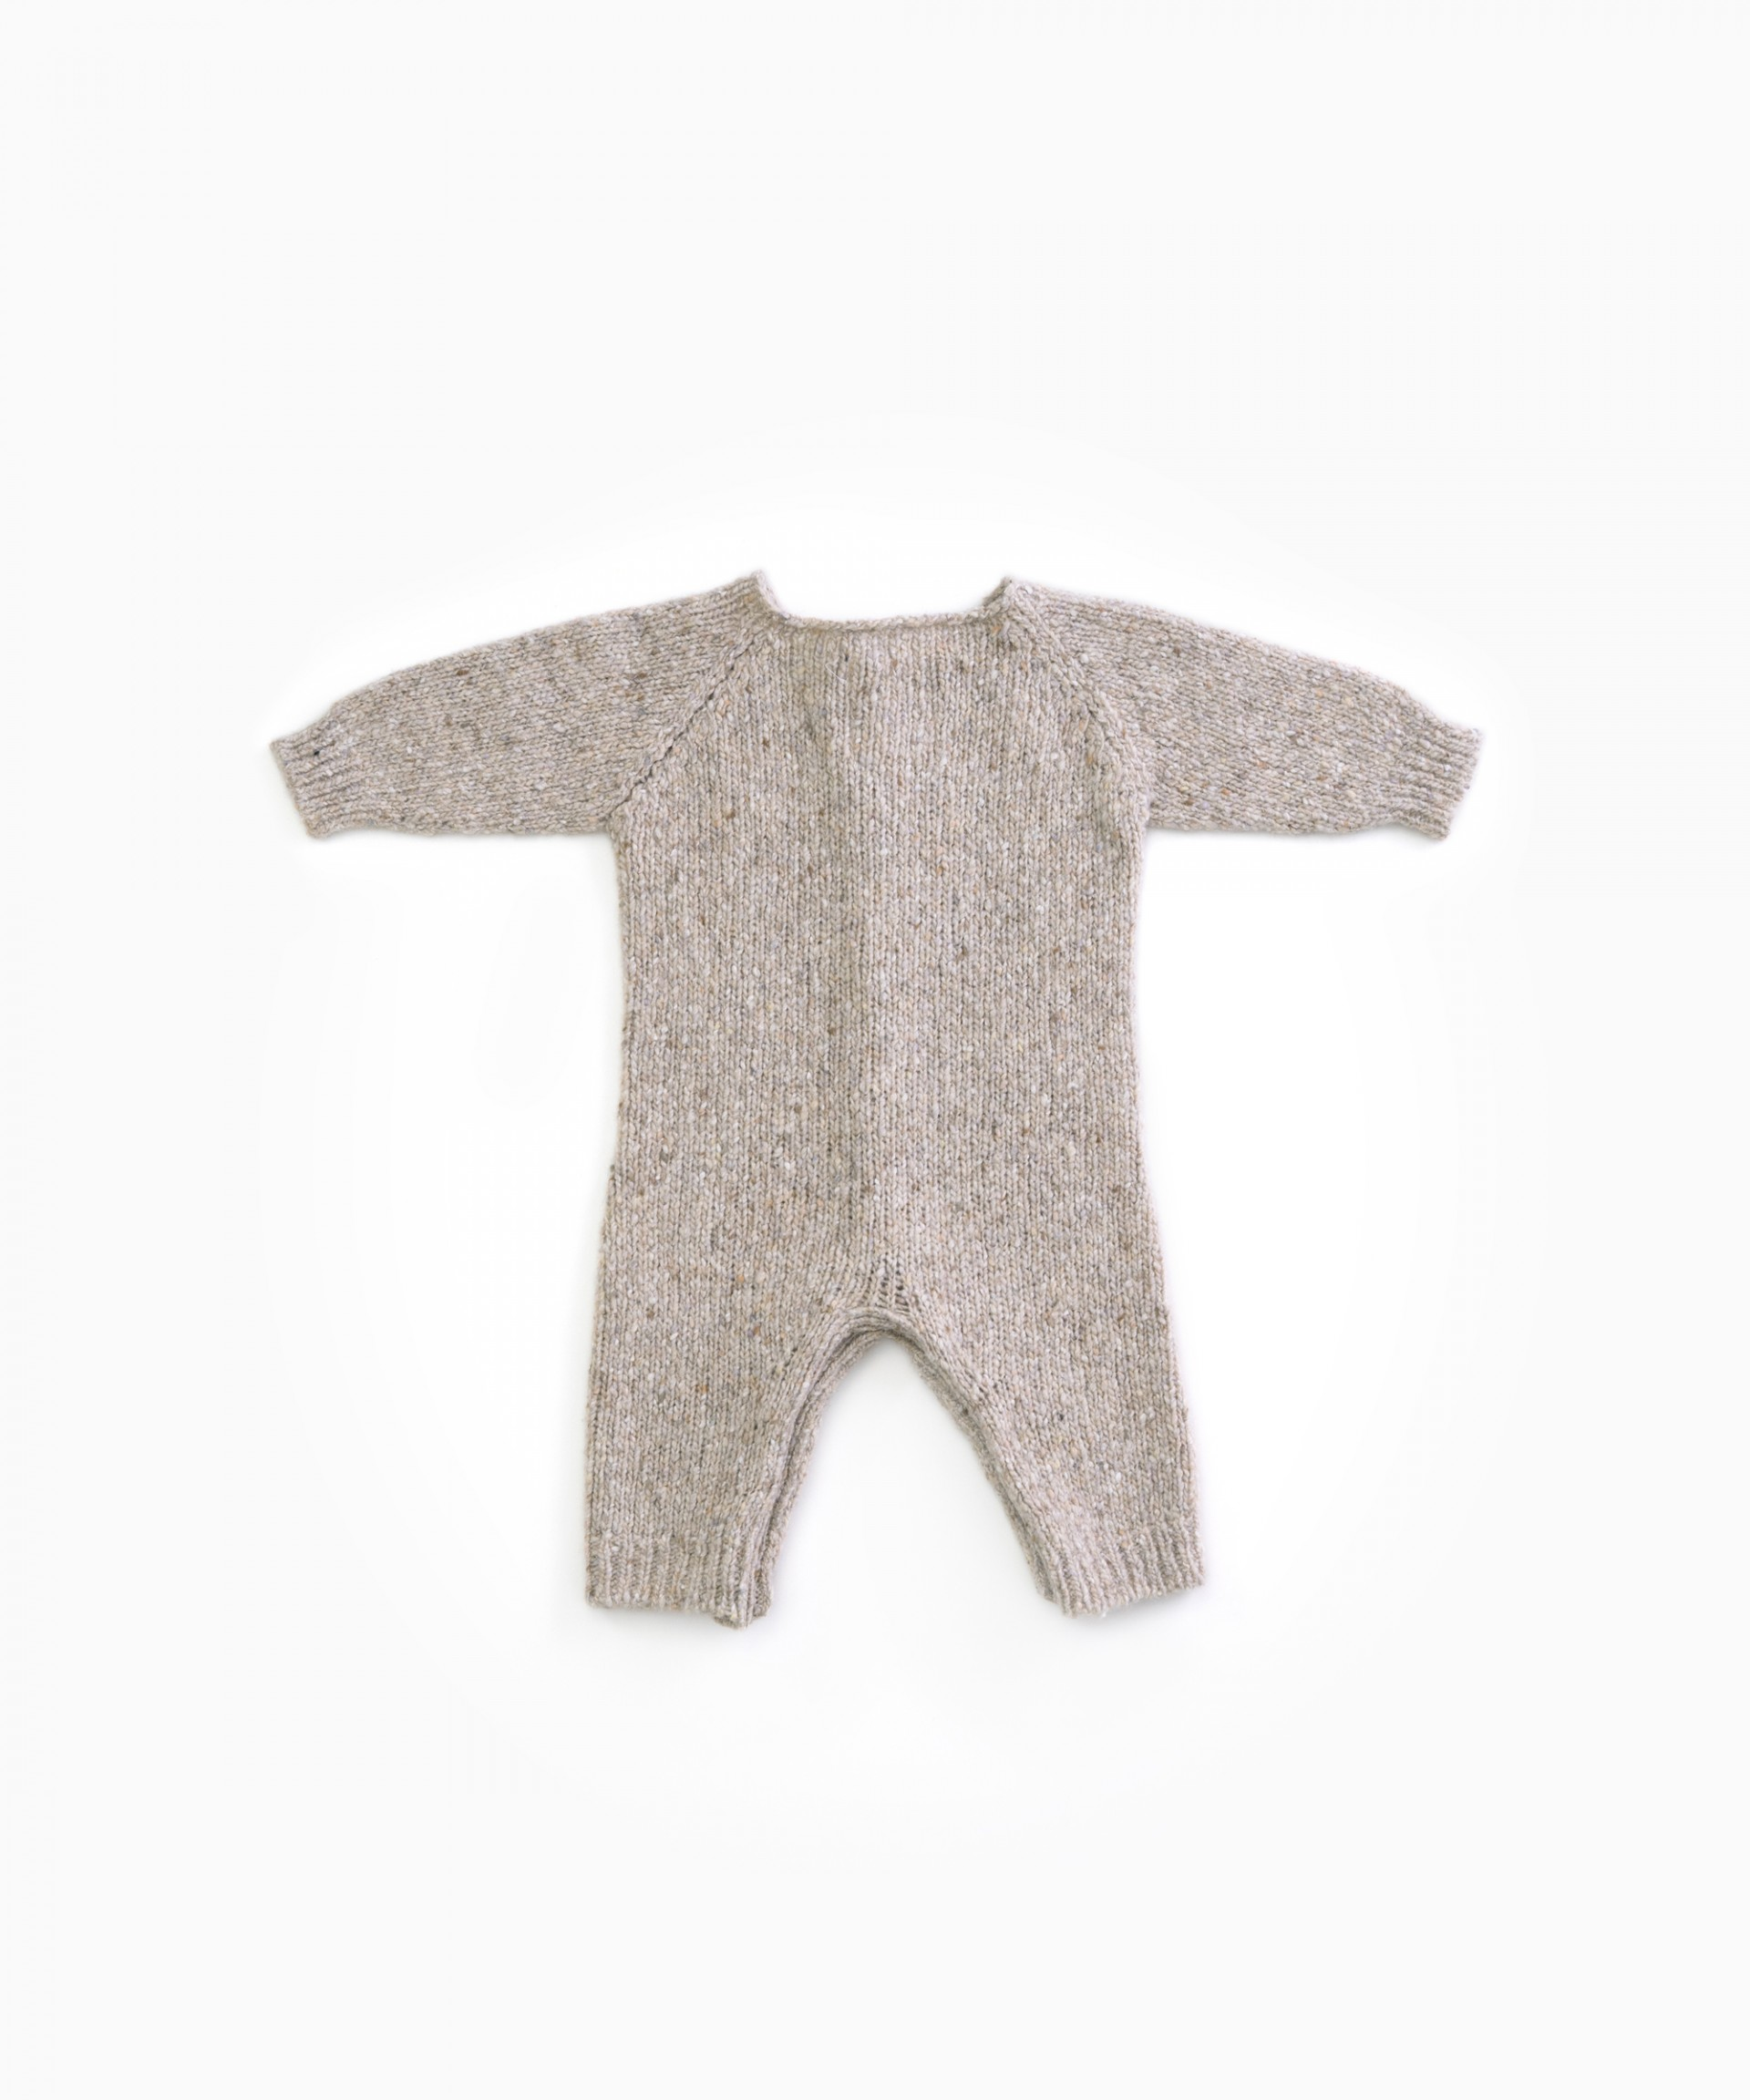 knitted jumpsuit with recycled fibres | Woodwork